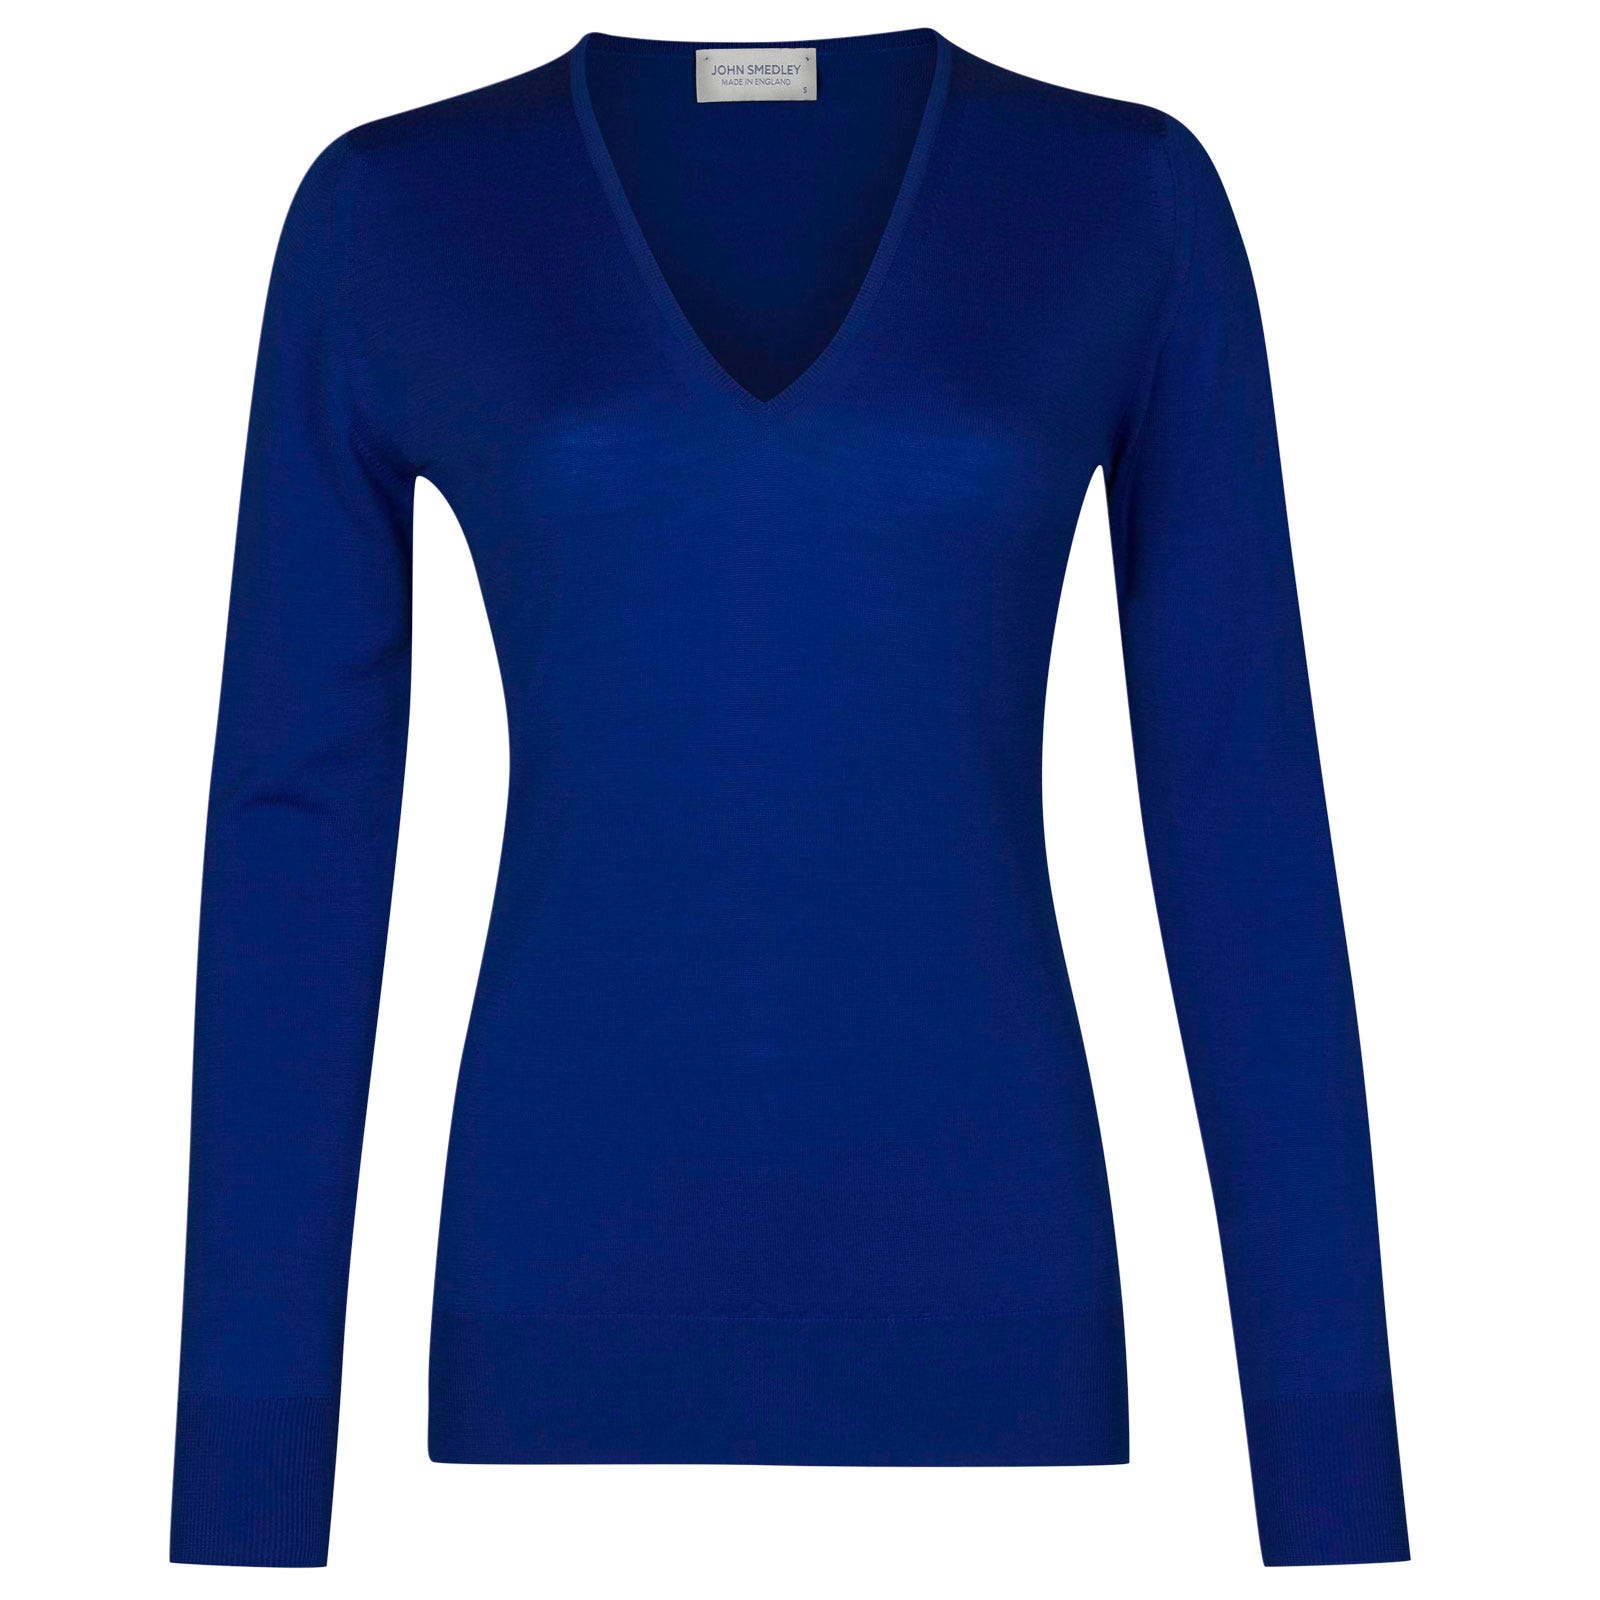 John Smedley orchid Merino Wool Sweater in Coniston Blue-L